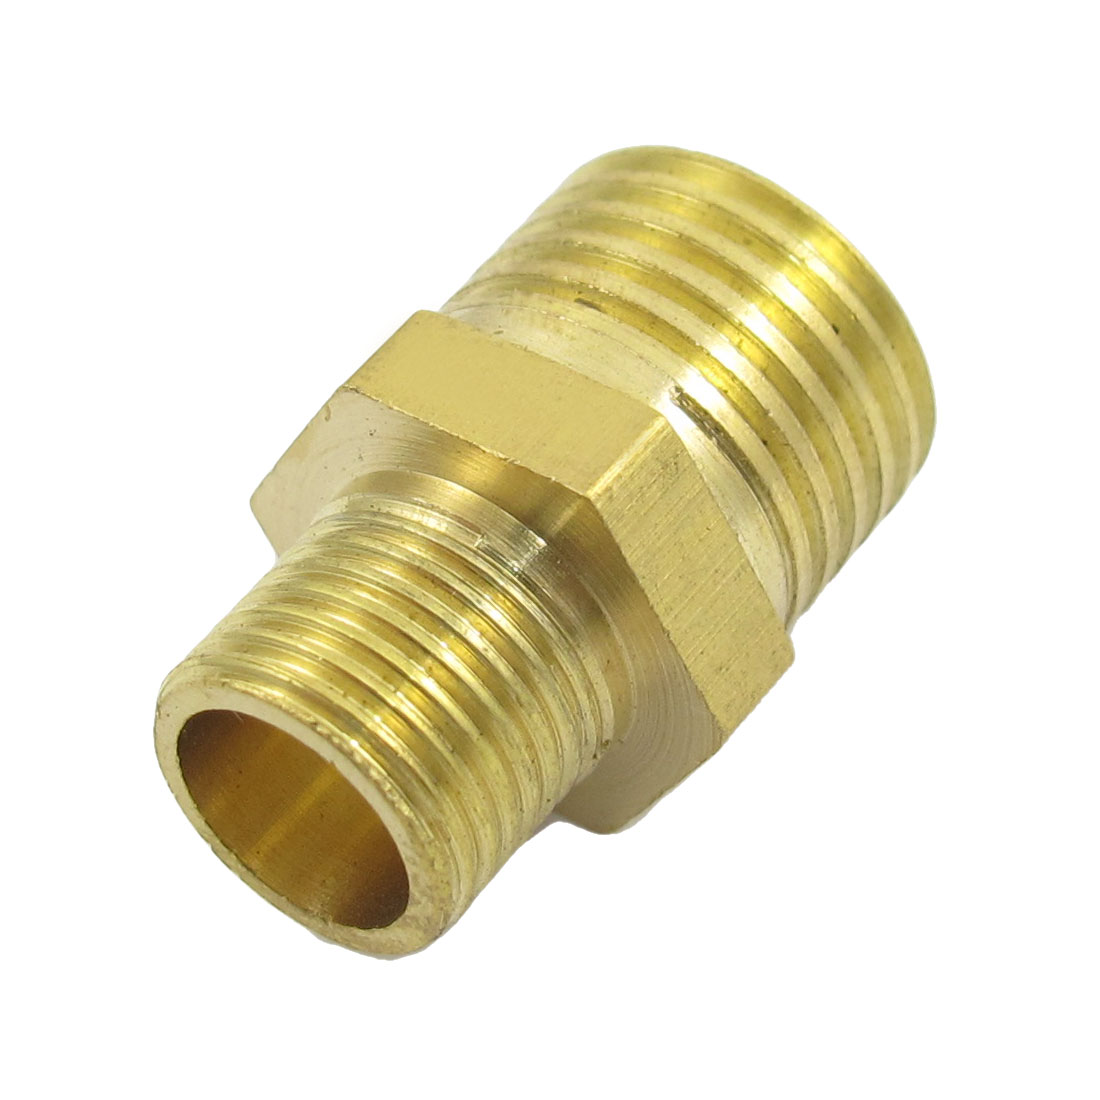 Air Pneumatic Pipe 12.5mm to 9mm M/M Brass Reducing Nipple Coupler Adapter